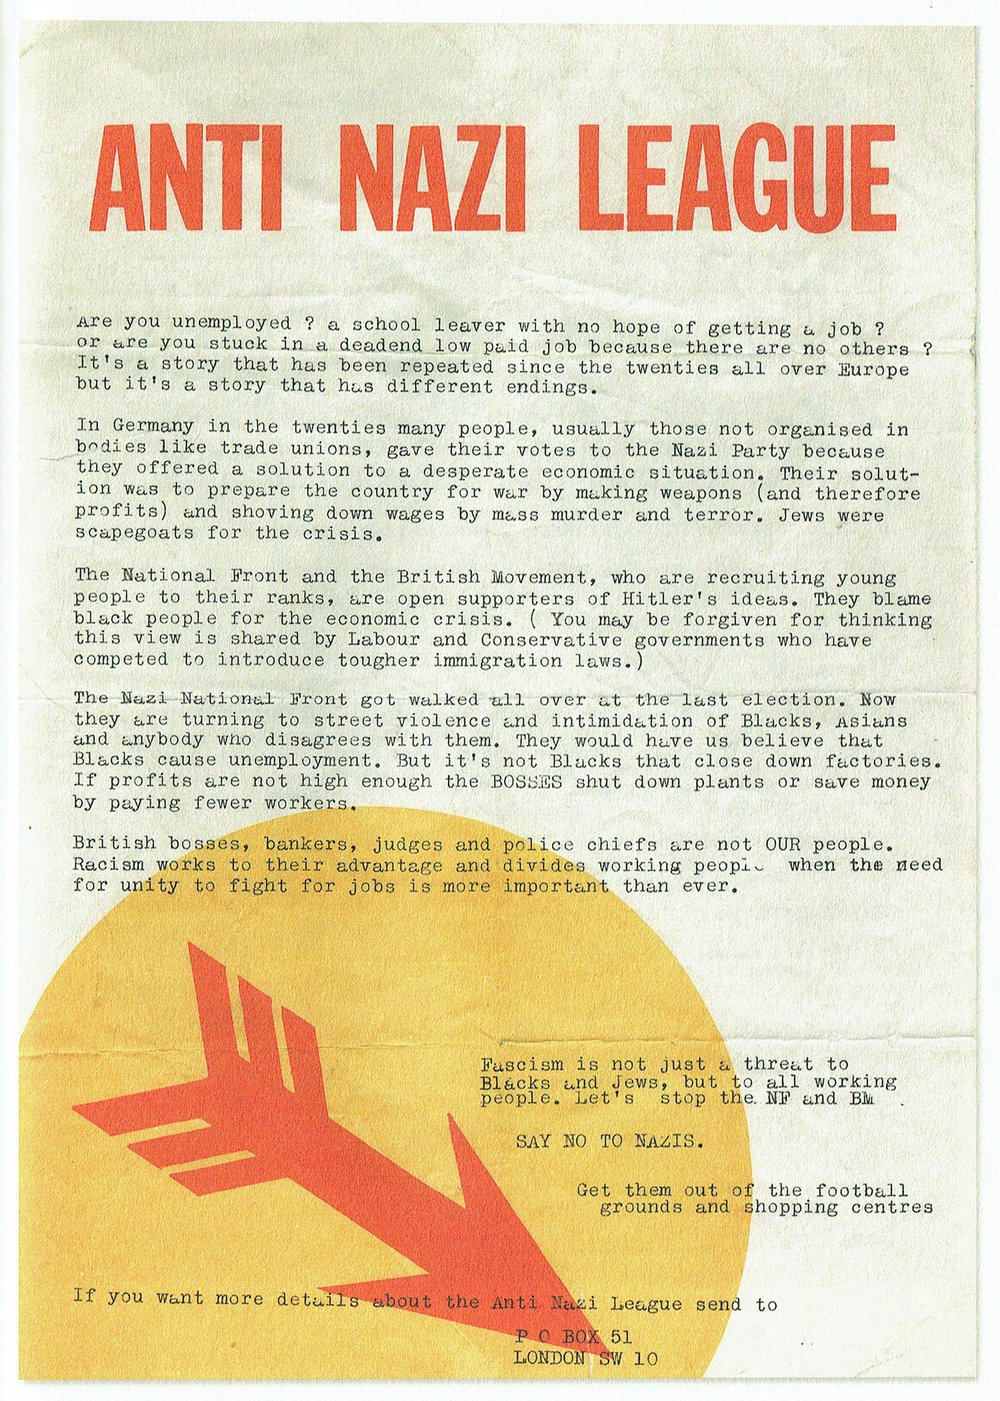 anti-nazi-league-1970s